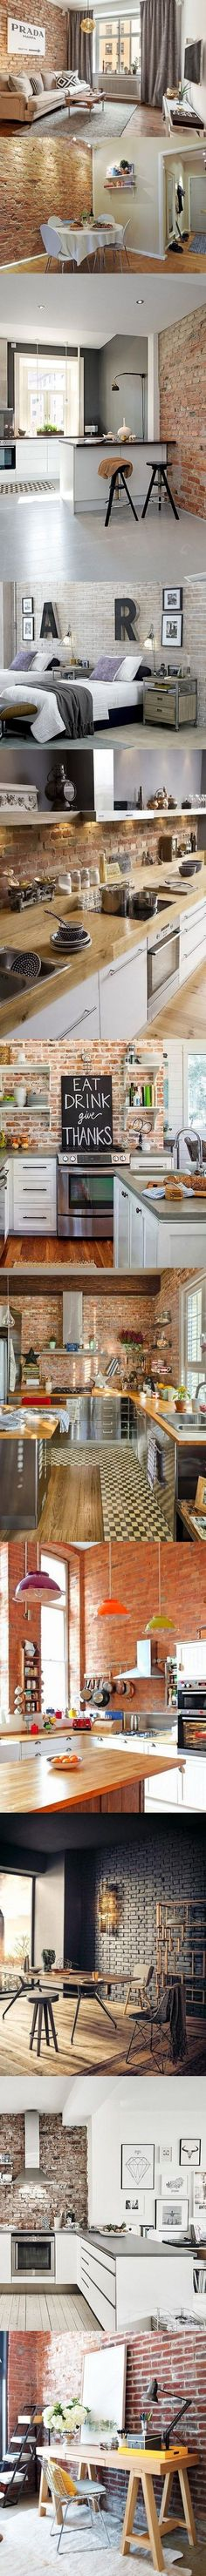 I could rearrange my parlor to show more of the exposed brick Design Loft, House Design, Interior Architecture, Interior And Exterior, Urban Loft, Loft Style, Exposed Brick, Home Living Room, Modern Rustic